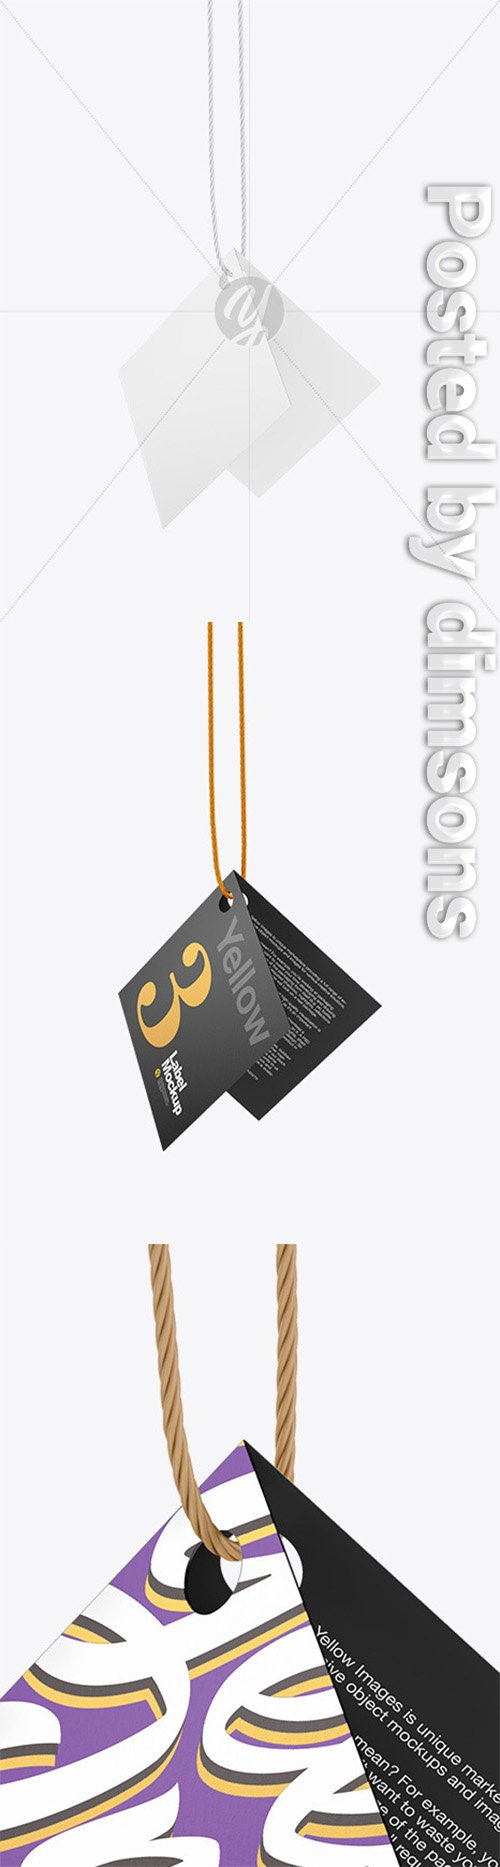 Hanging Textured Label Mockup 66325 TIF